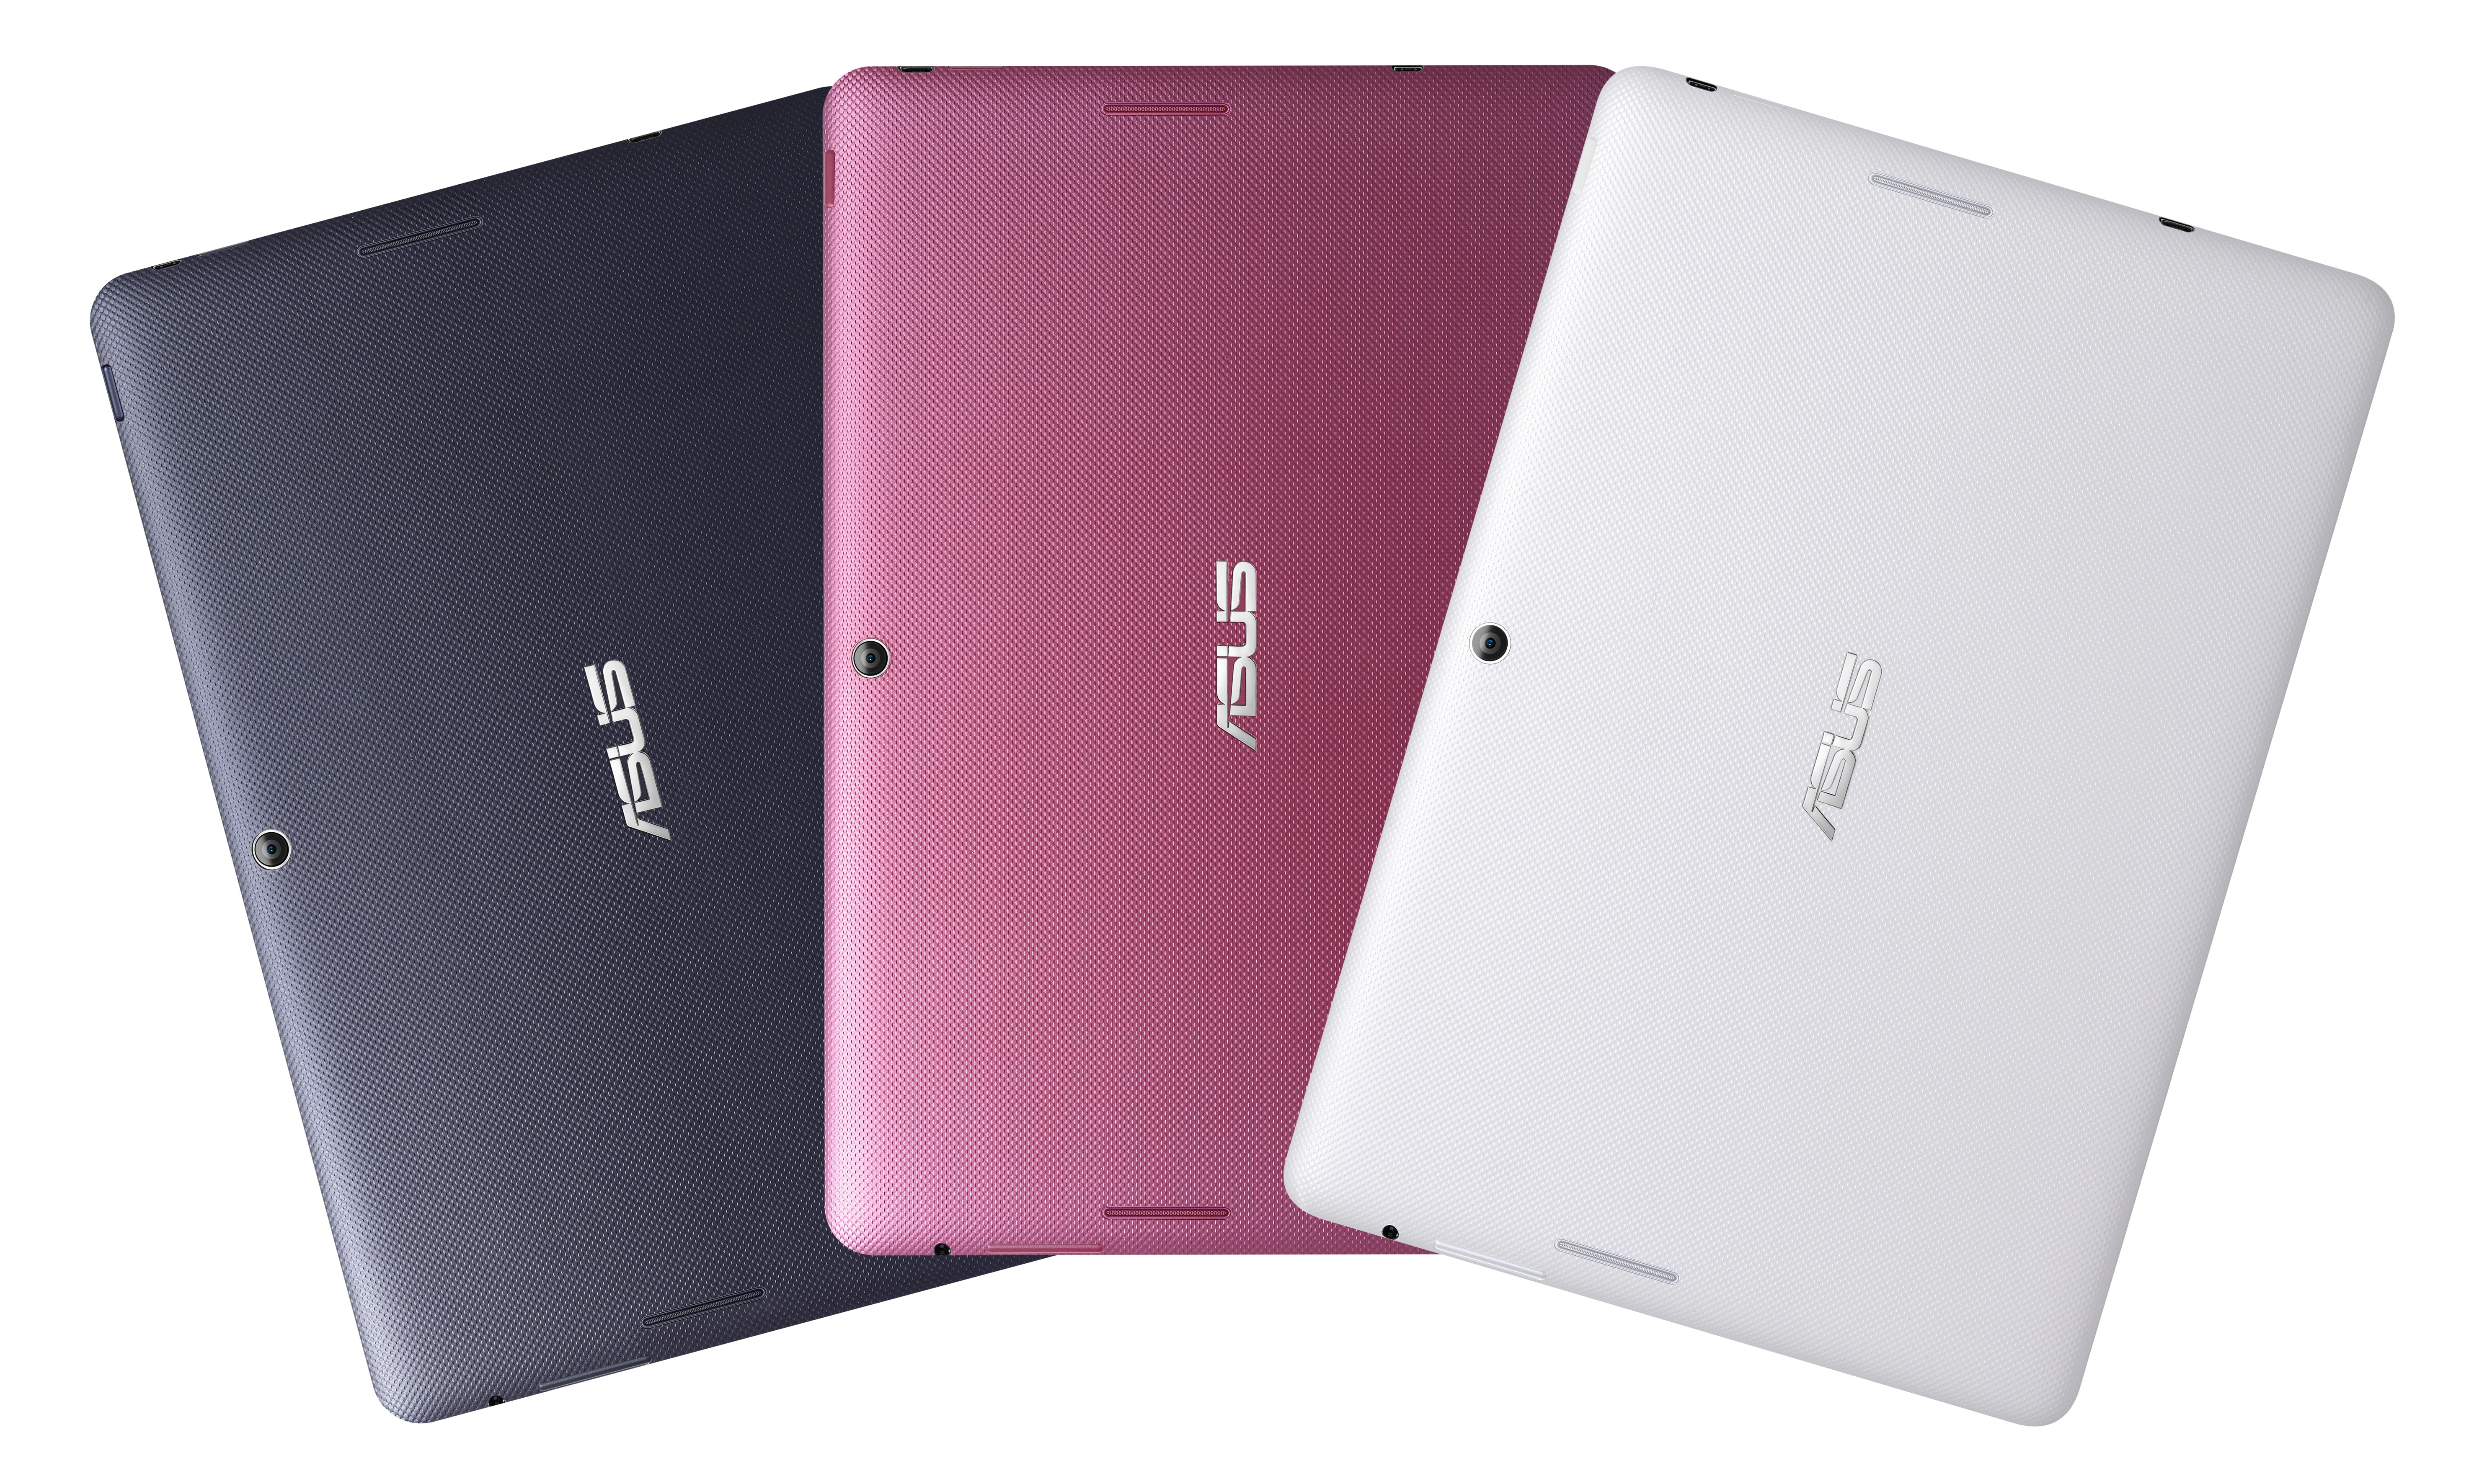 ASUS Announces 1080p, Intel-Powered MeMO Pad FHD 10 And ...